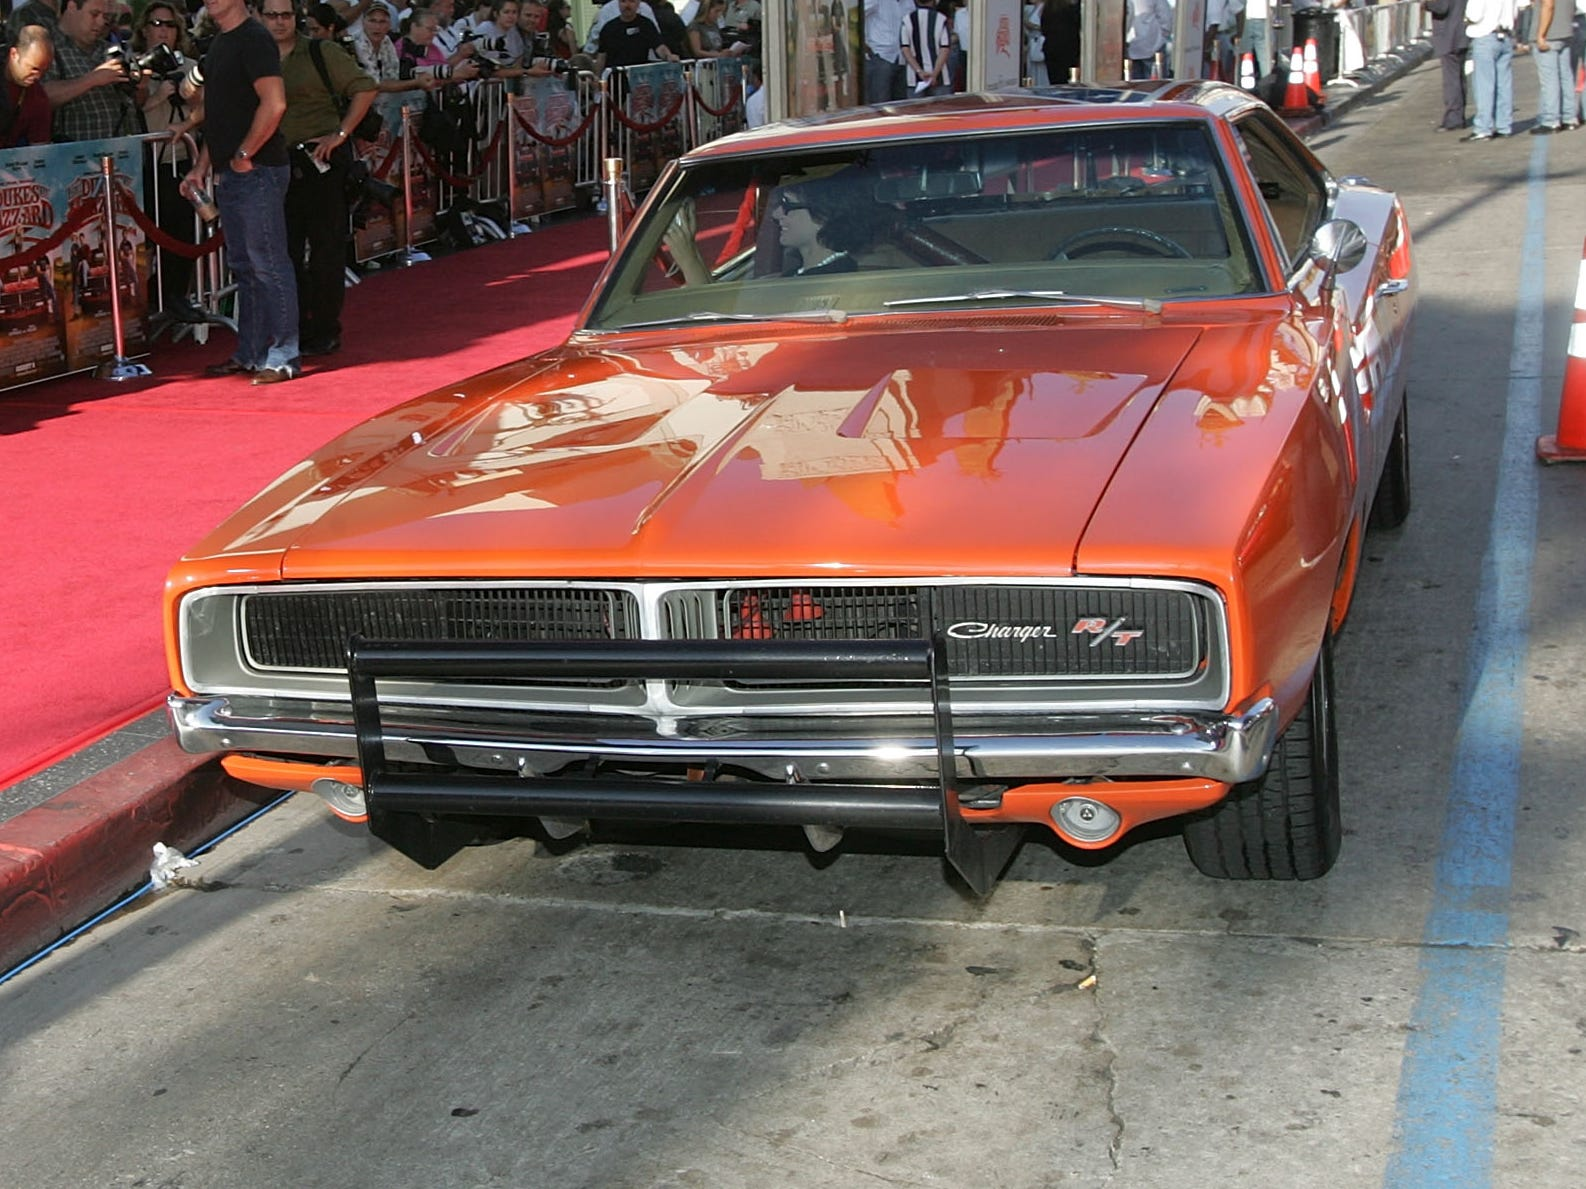 """HOLLYWOOD , CA - JULY 28:  The """"General Lee"""", a 1969 Dodge Charger muscle car arrives at the Premiere Of """"The Dukes of Hazzard"""" at the Grauman's Chinese Theatre on July 28, 2005 in Hollywood, California. (Photo by Kevin Winter/Getty Images)"""